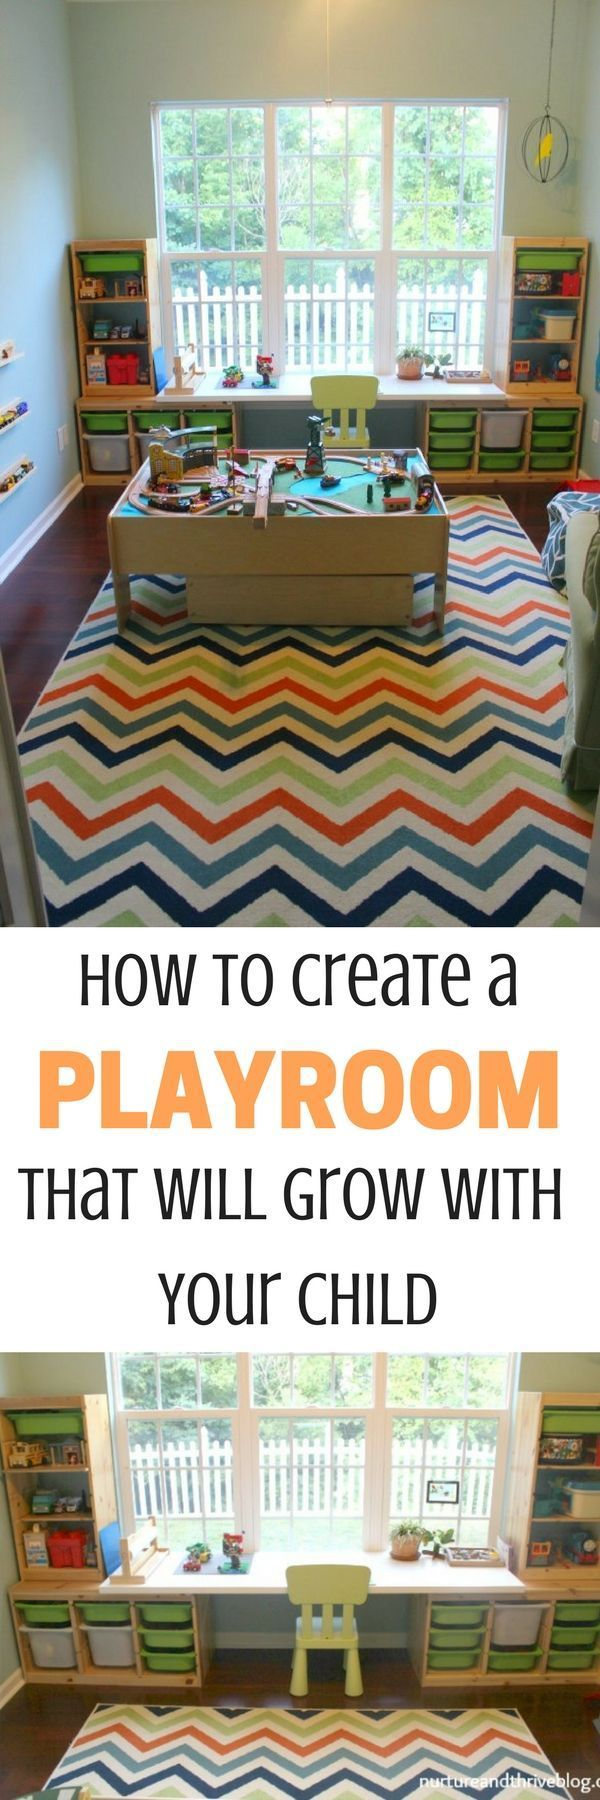 Michaels coupon money saving mom 174 - How To Create A Playroom